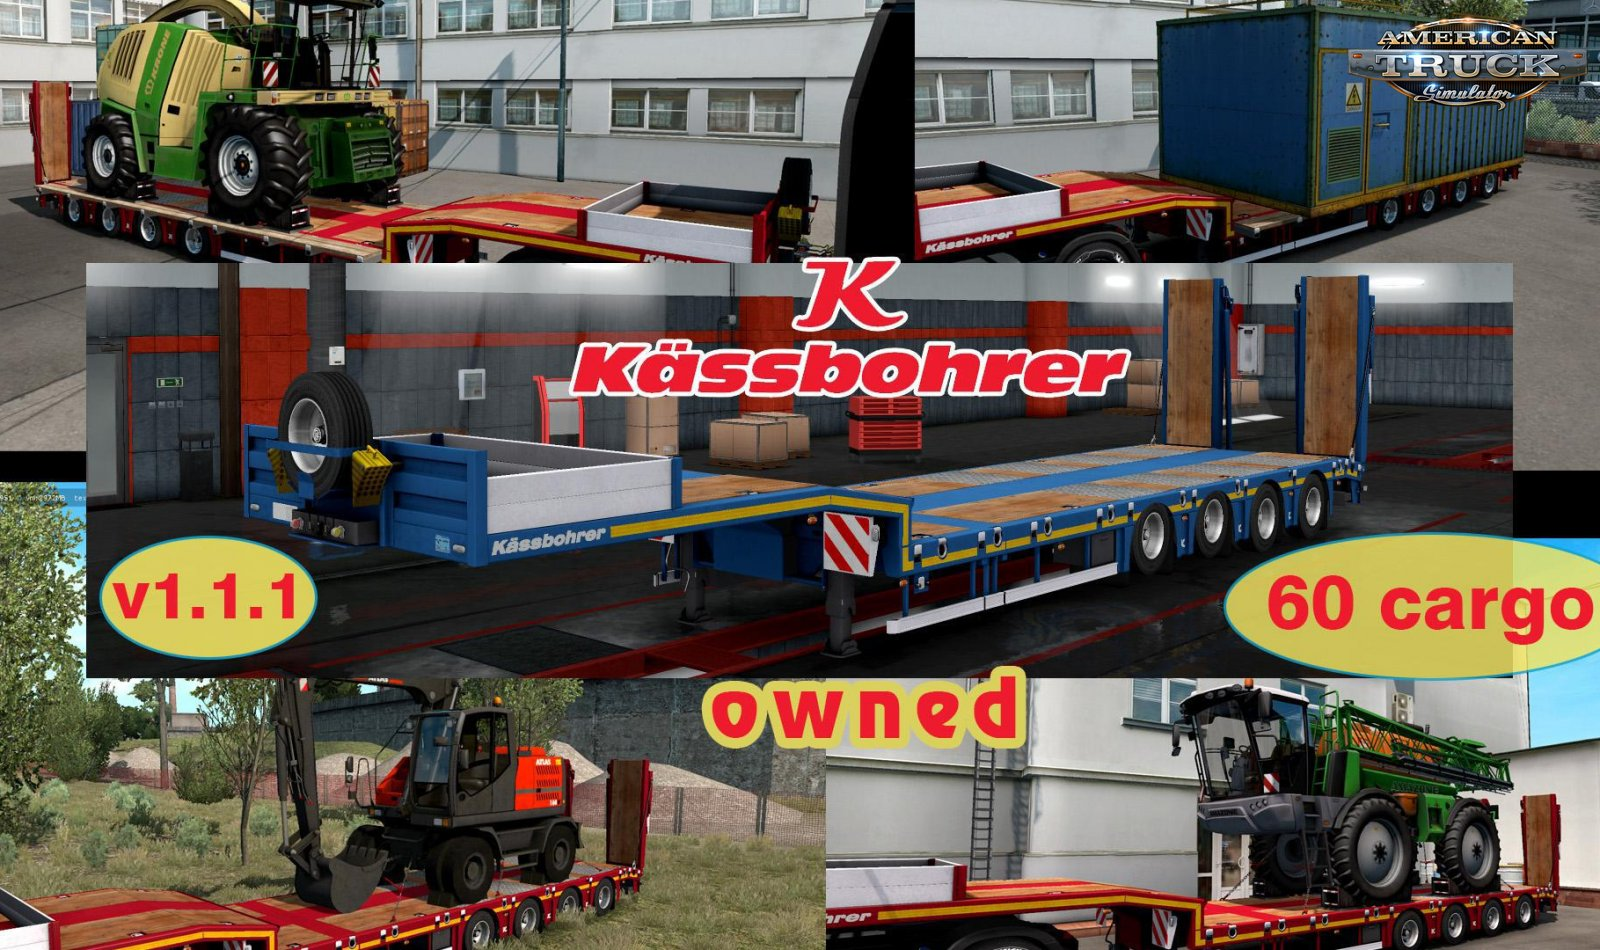 Addon v2.0 for Kassbohrer LB4E owned (AiO + Military) v1.1.1